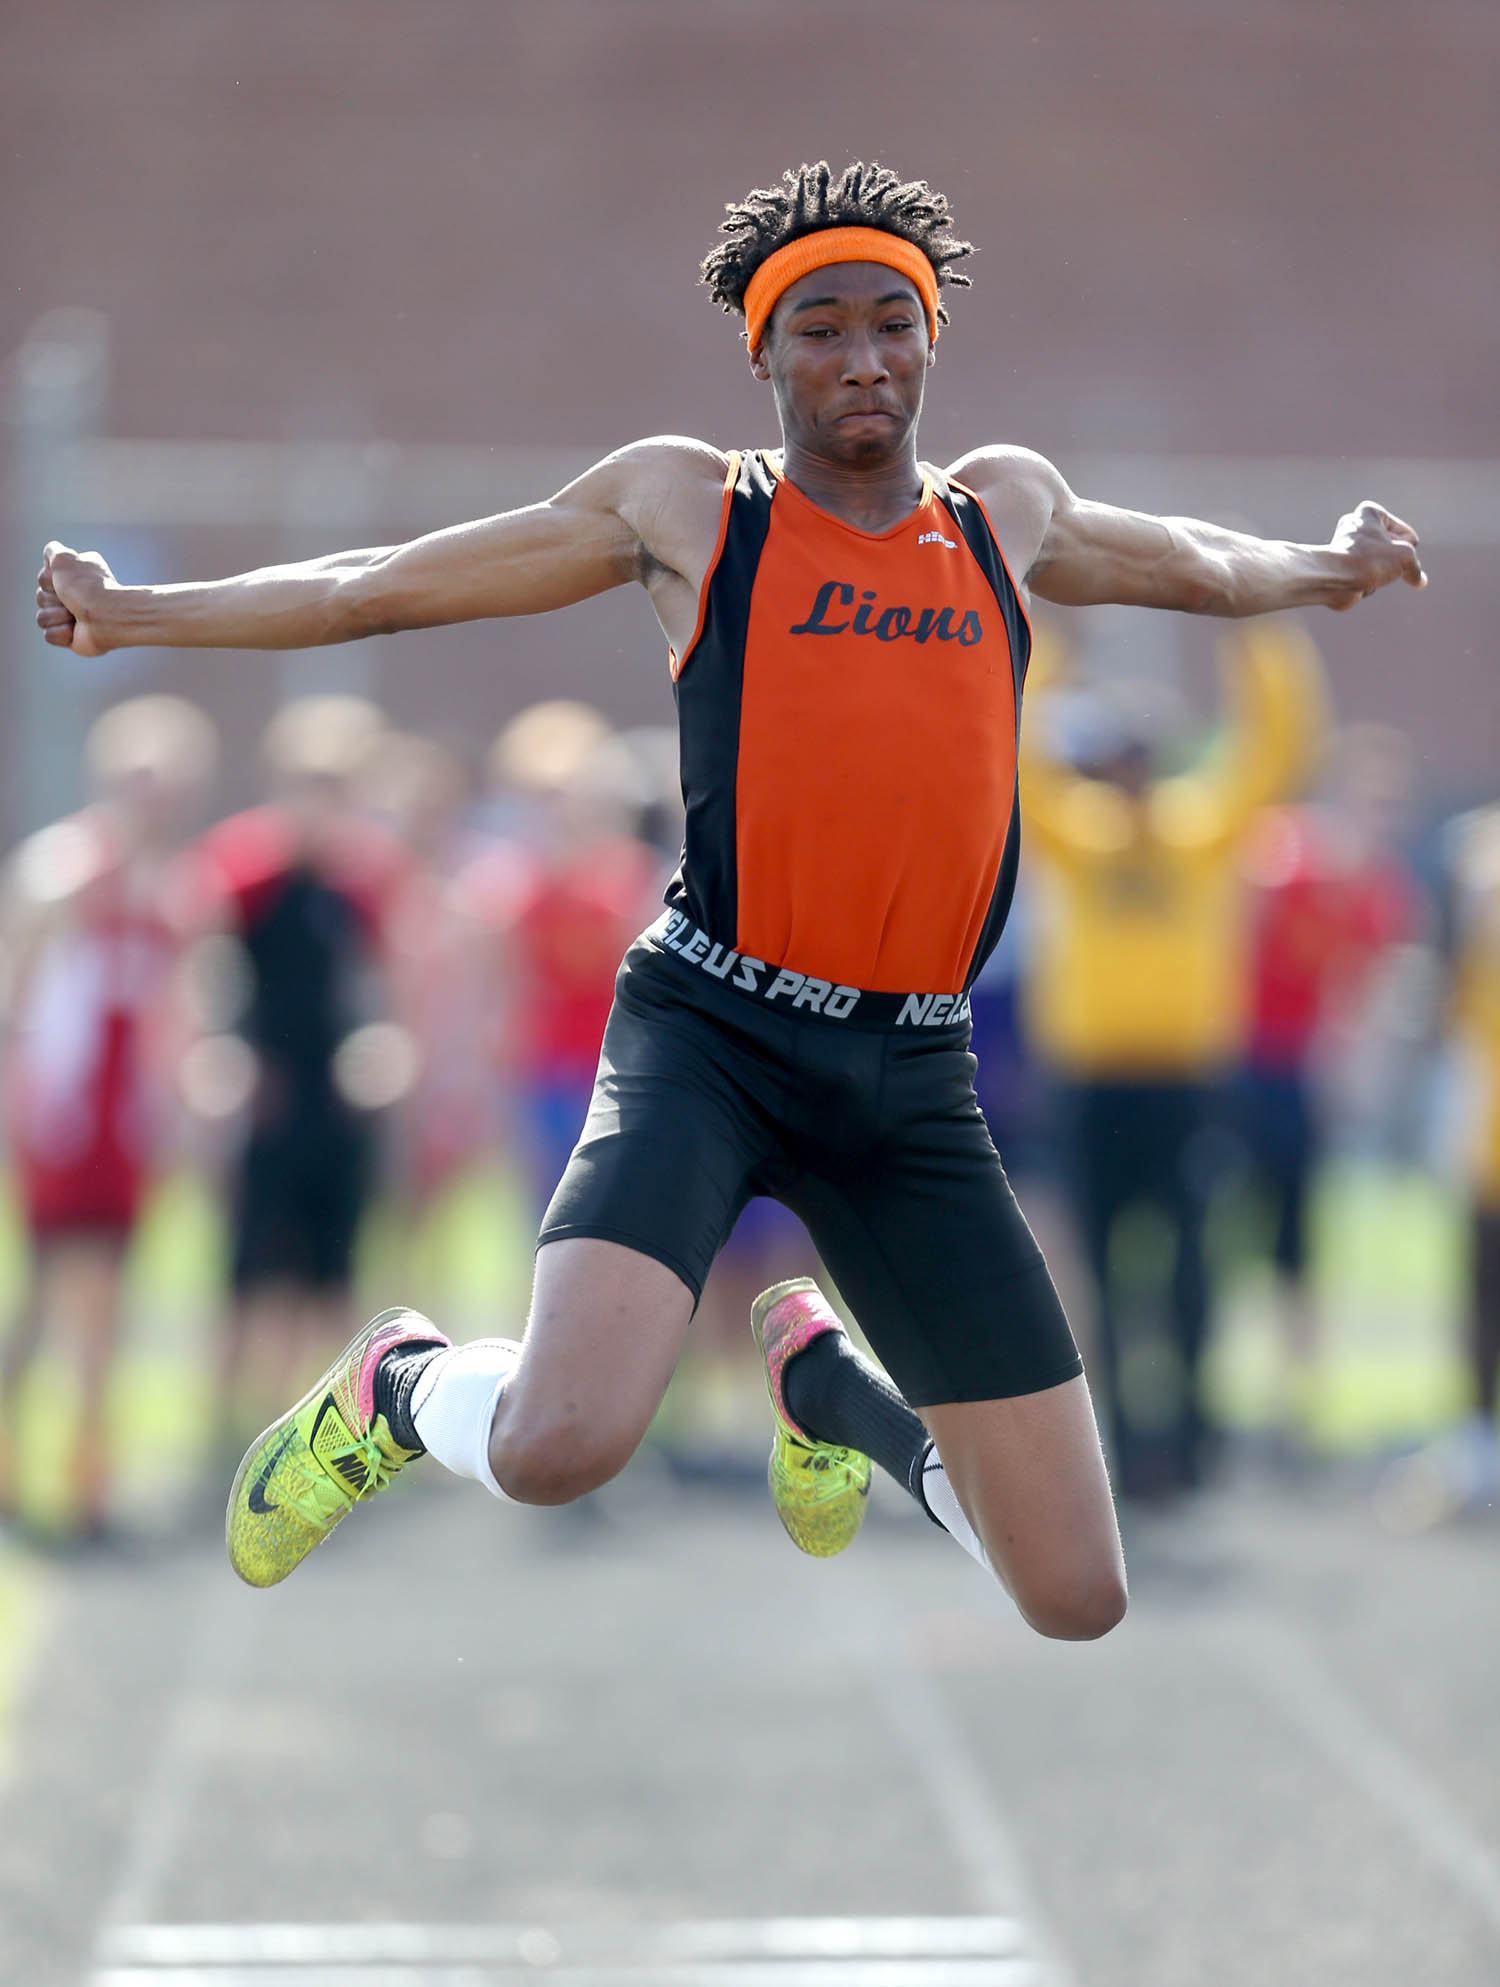 Lanphier's Kahlil Ross is currently the top qualifier in the Class 2A Triple Jump for the IHSA Boys Track & Field State Finals with a jump of 46-04.75. [Justin L. Fowler/The State Journal-Register]